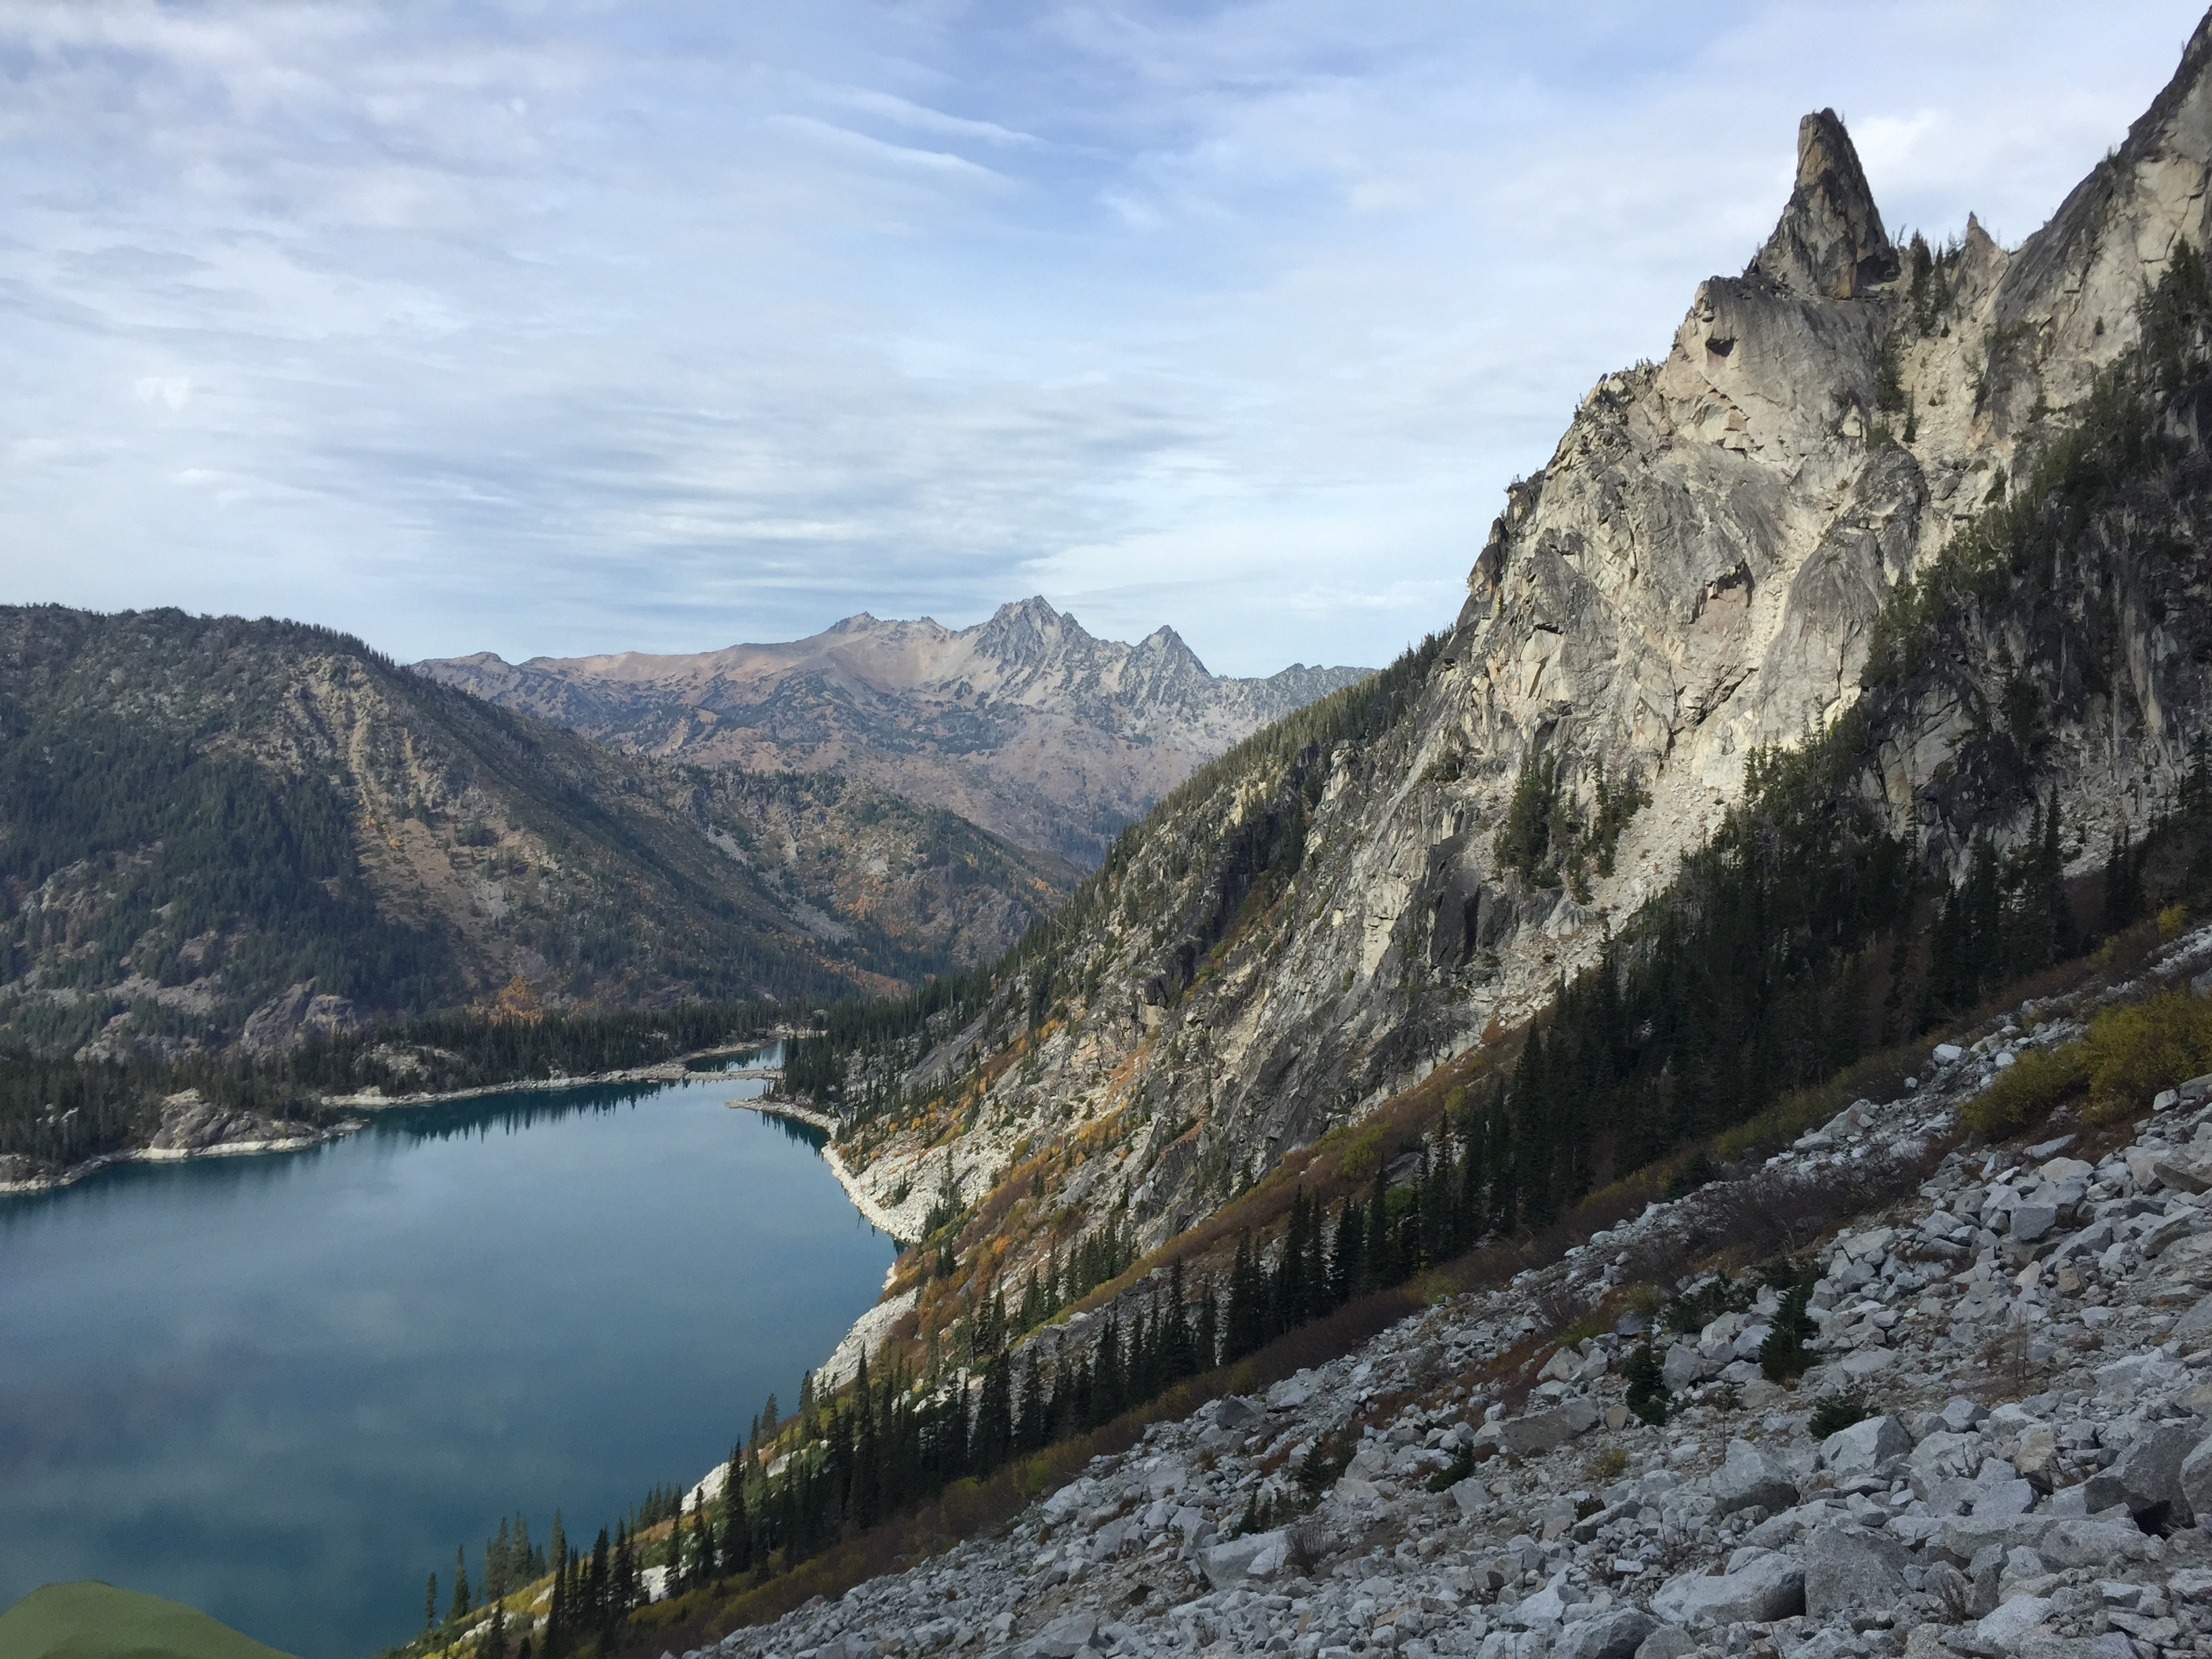 The view from Aasgard Pass. 1 mile and 2,000 ft of elevation gain to overlook Colchuck Lake.